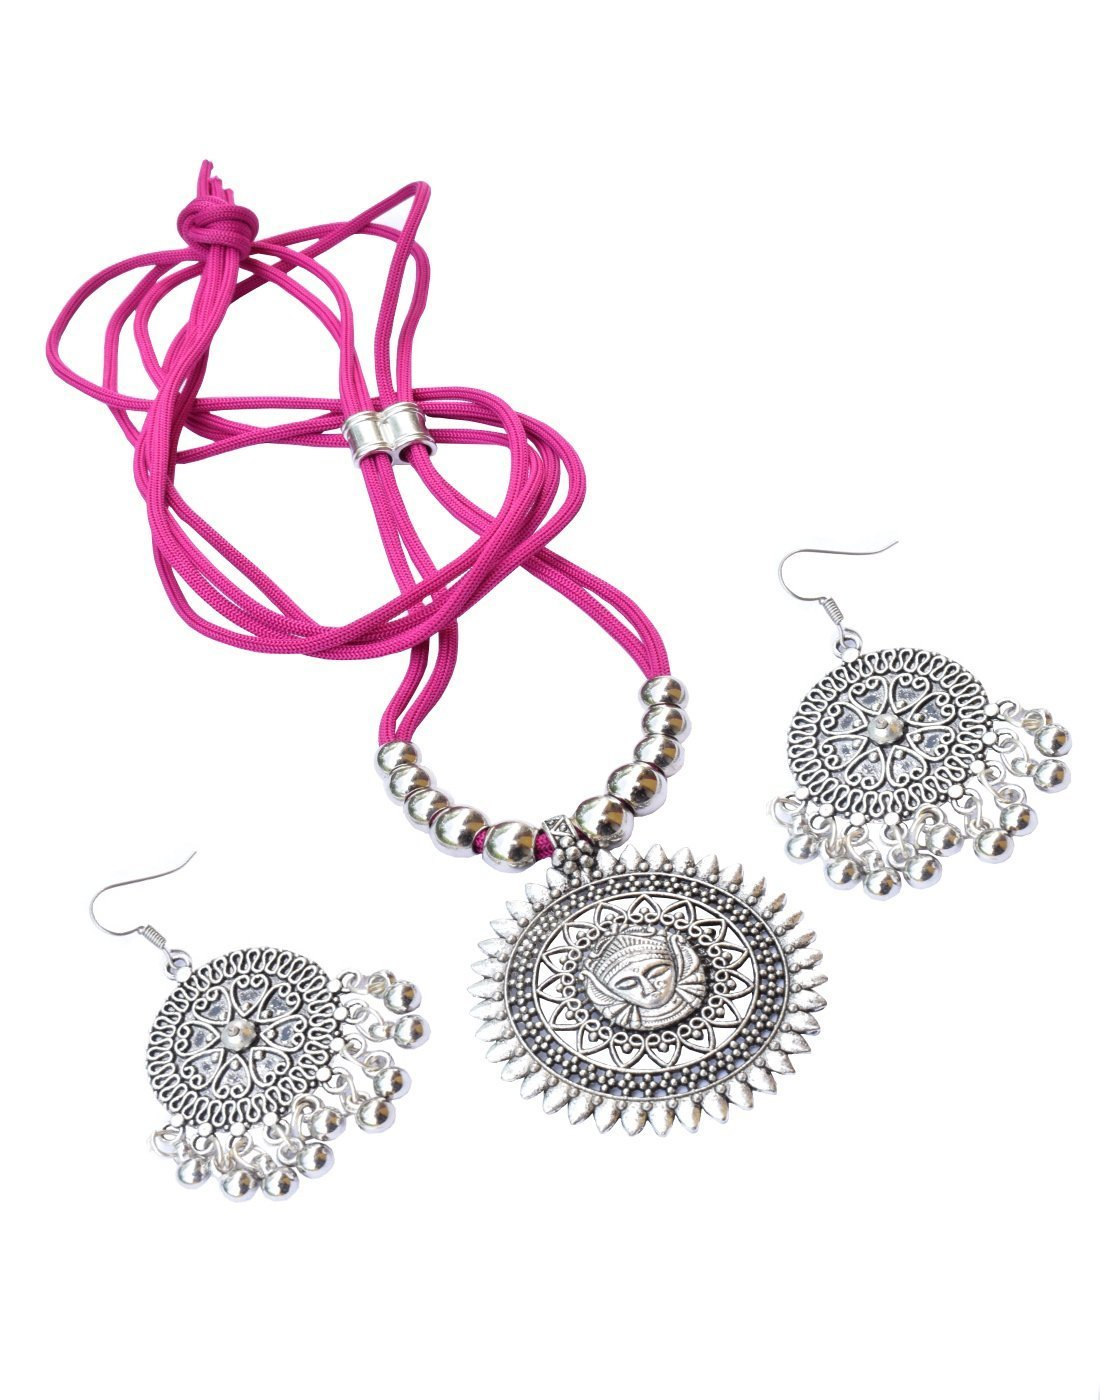 GiftPiper Oxidized Metal Threaded Necklace Set -Fuchsia